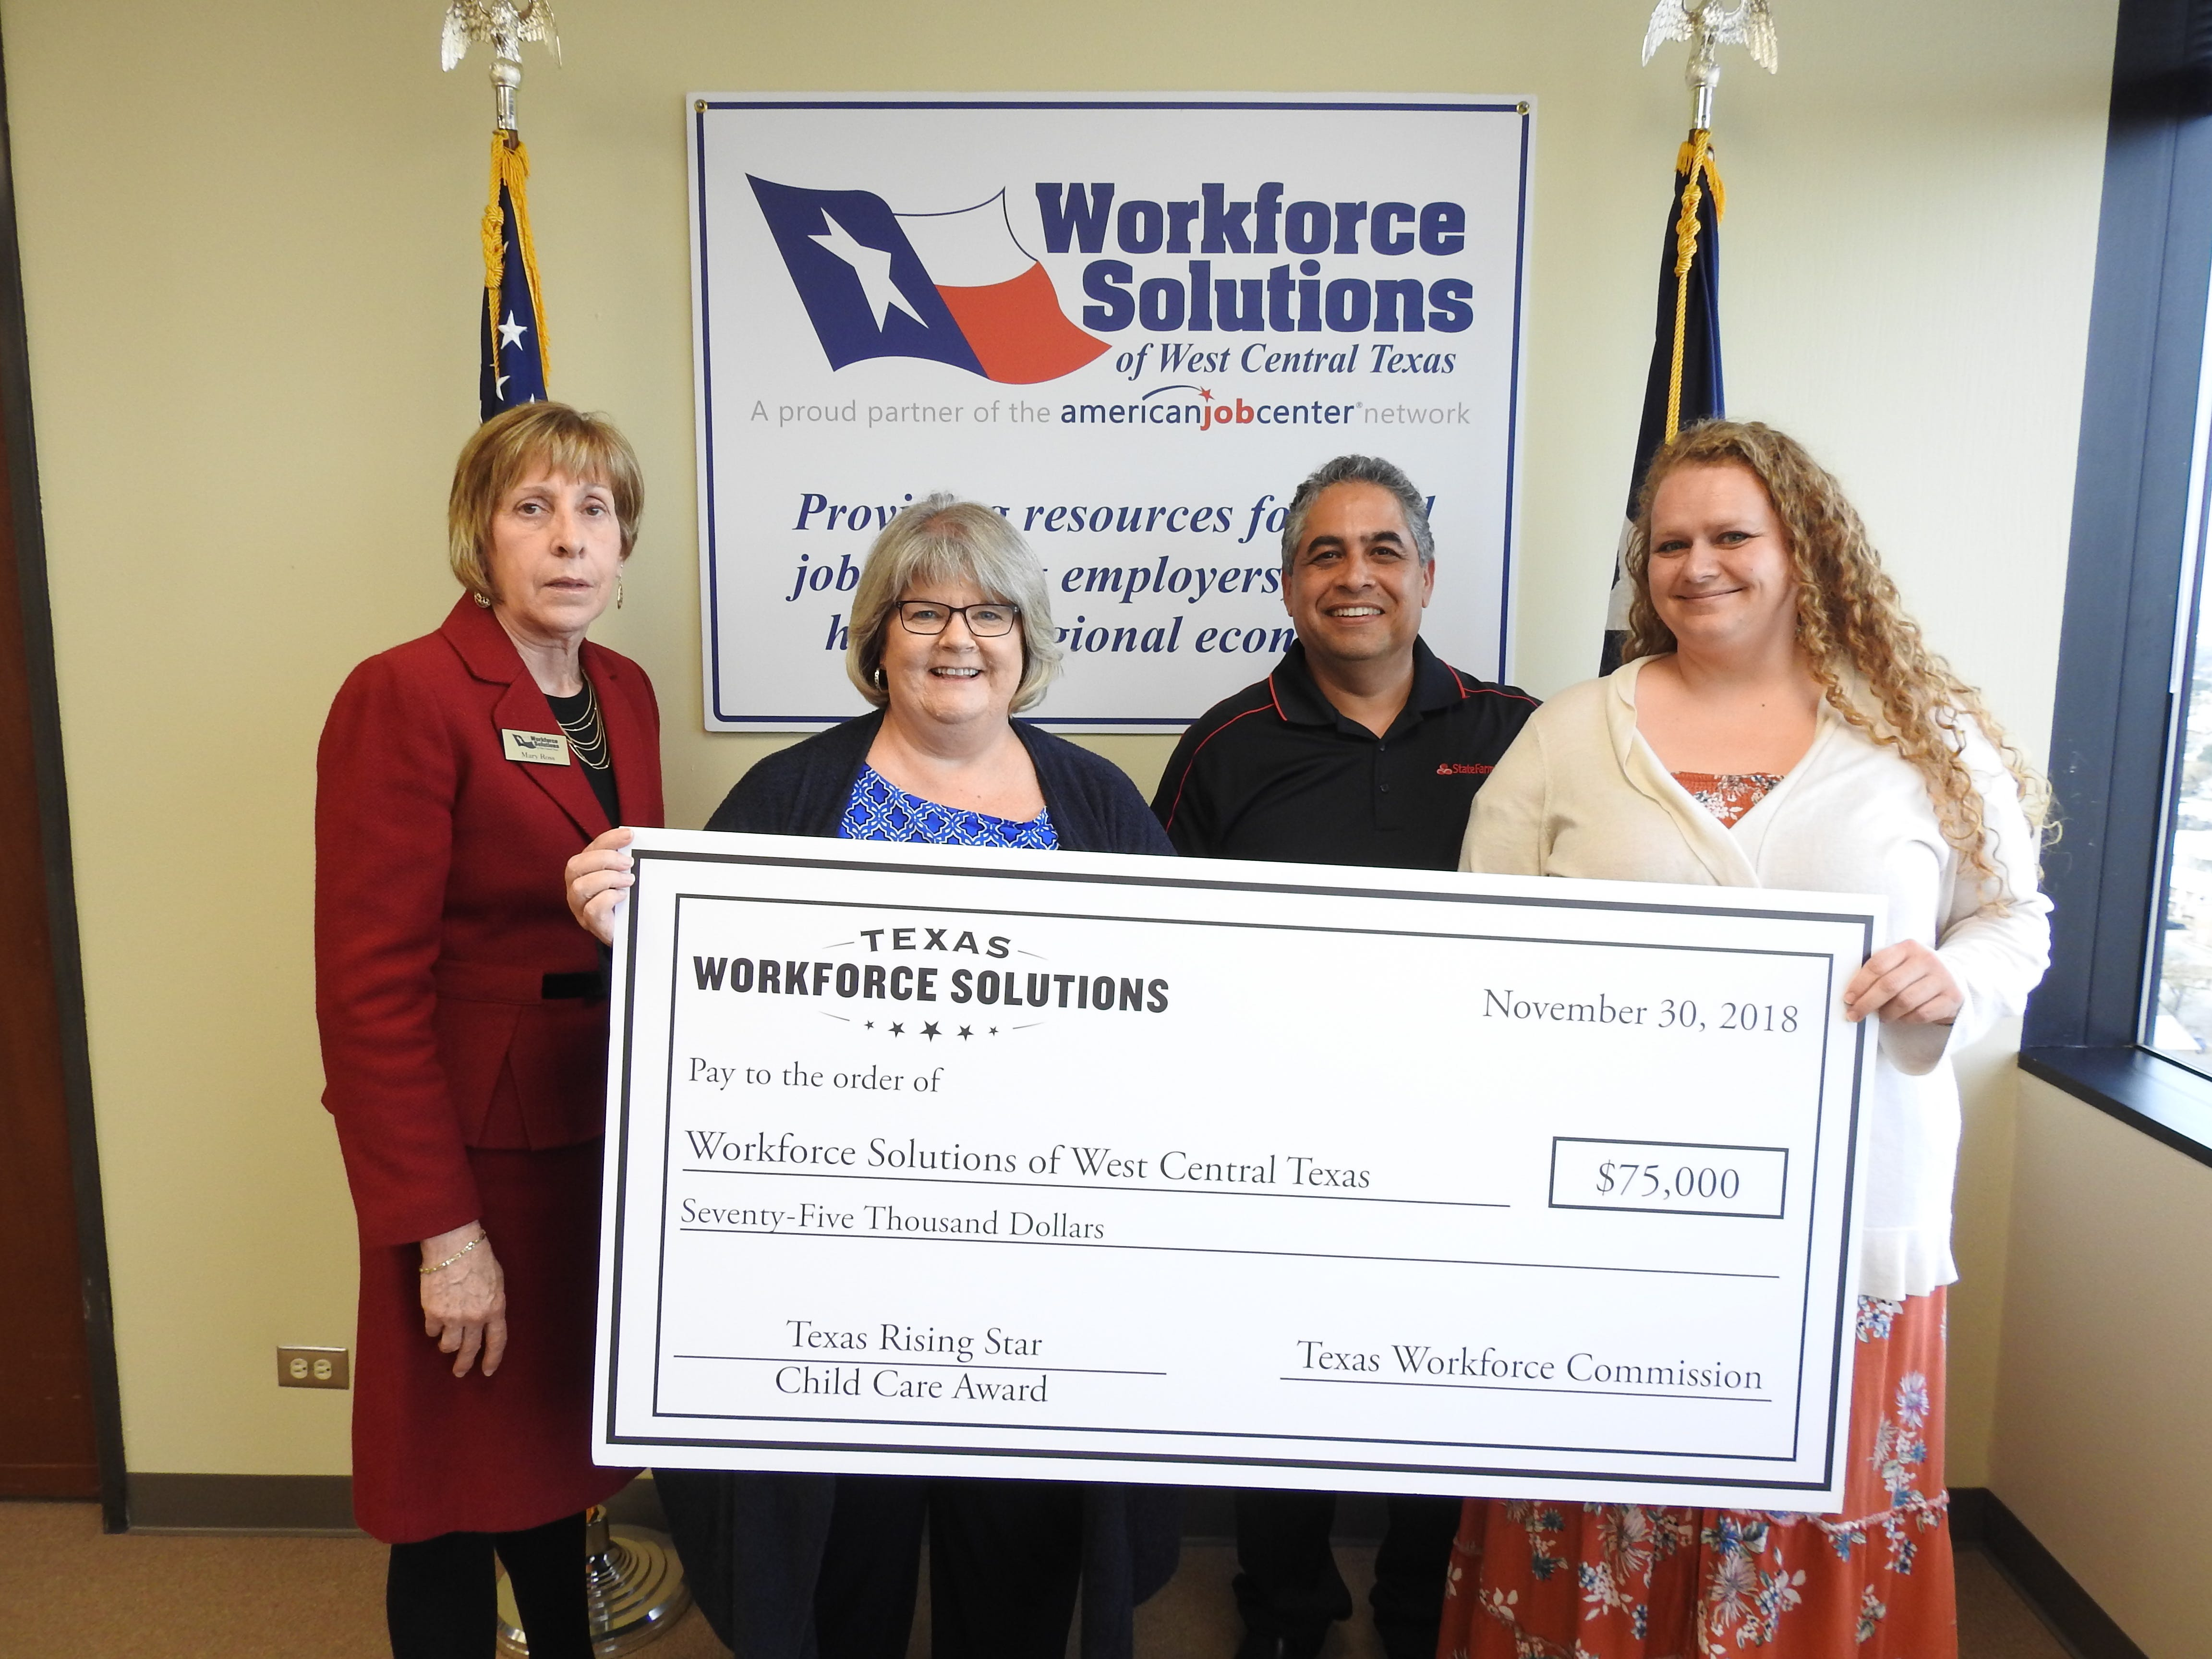 Workforce Solutions of West Central Texas was recently awarded $75,000 Texas Rising Star Award for its collaboration with the city of Abilene to create a nature play and educational area for visitors to Kirby Lake Park. From left: Mary Ross, executive director Workforce Solutions board; Lisa Colyer Workforce Development Board childcare contract manager; Samuel Garcia, local workforce board chairman; and Mindy Ross, childcare quality specialist.